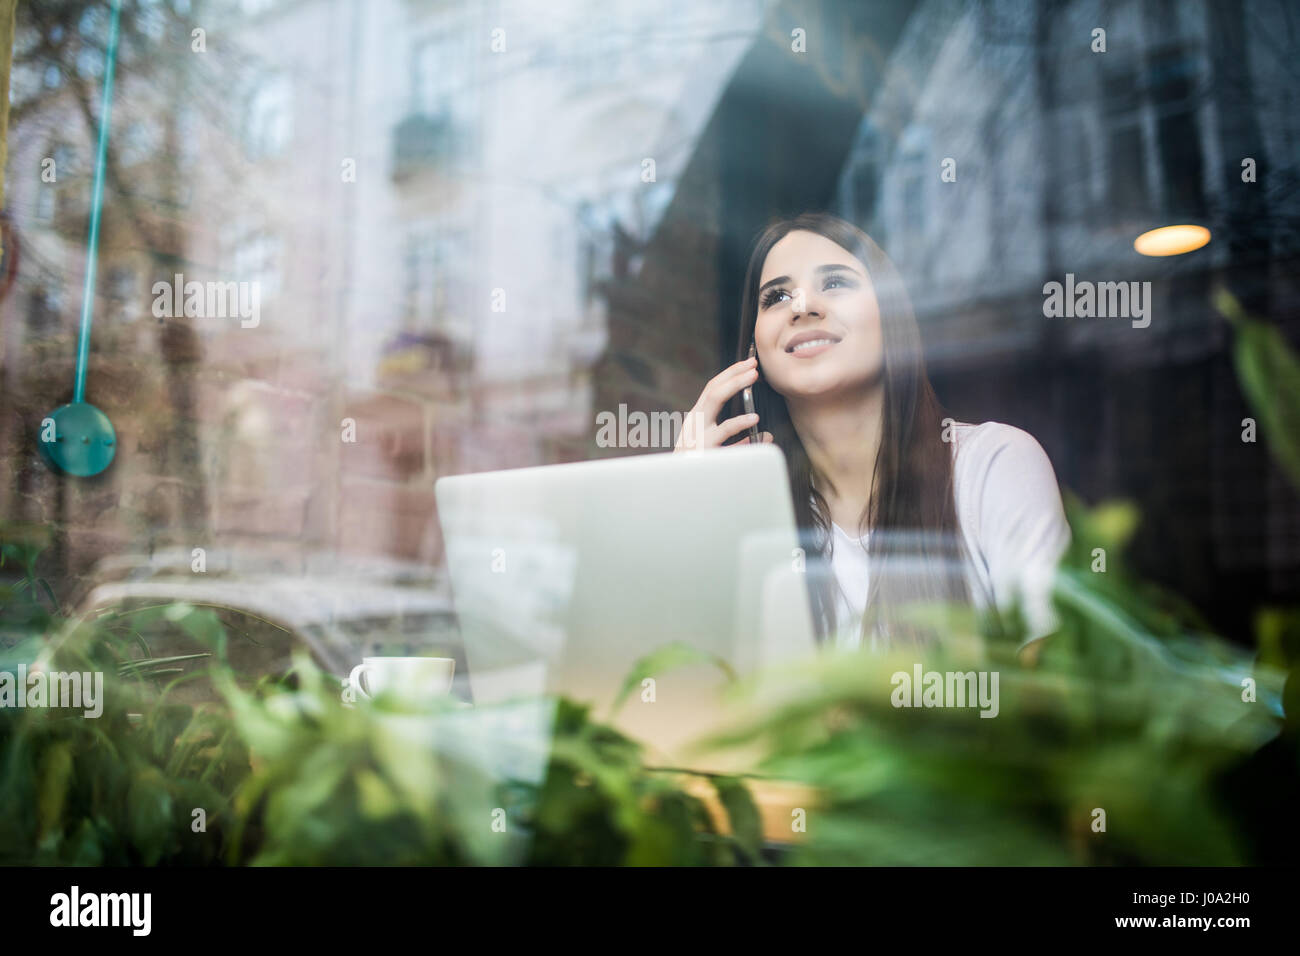 Young Woman talking on the phone in coffee shop Photo Stock